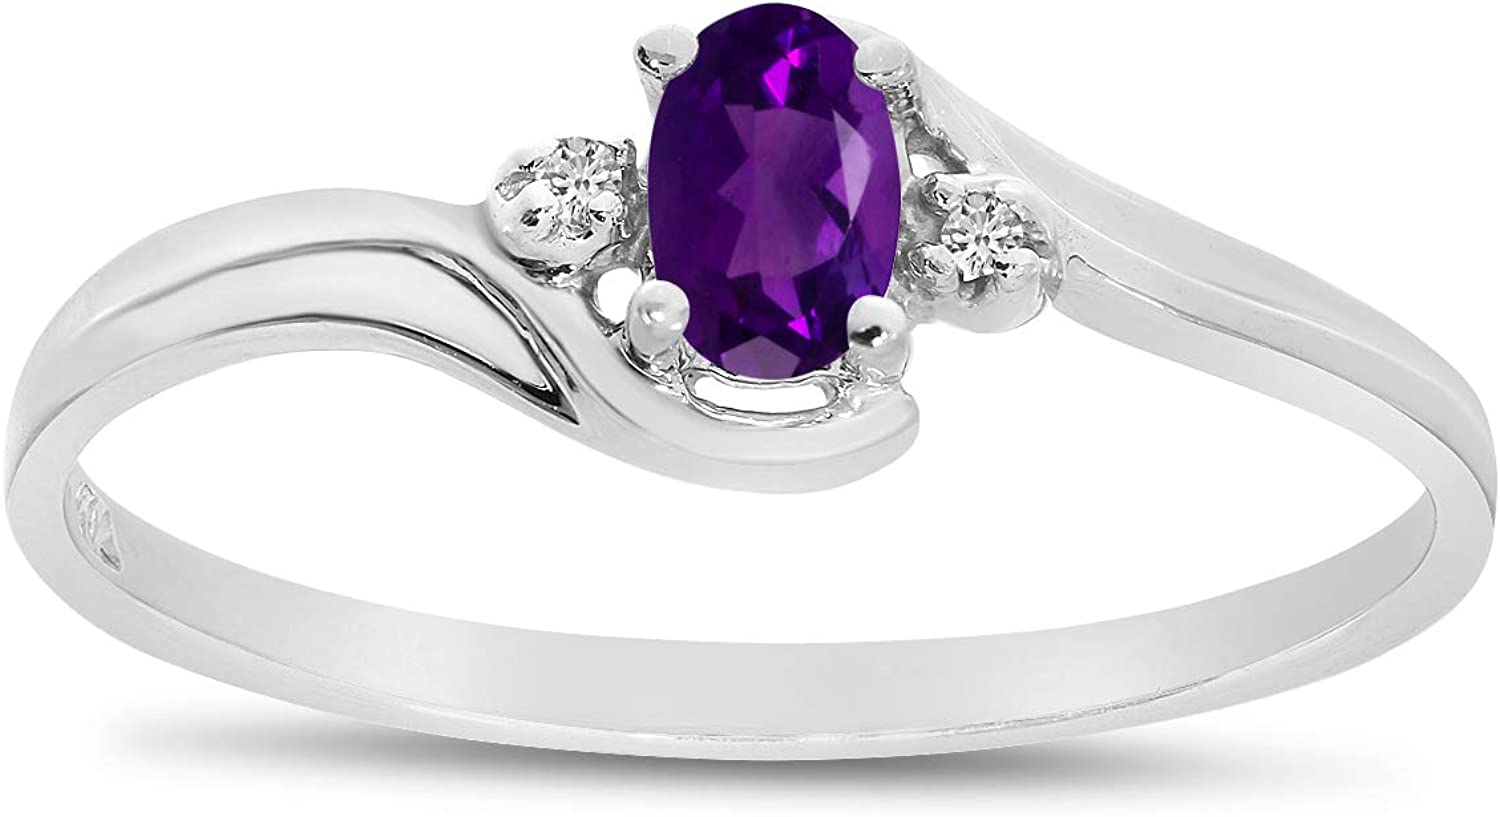 Jewels By Lux 10k White Gold Genuine Birthstone Solitaire Oval Gemstone And Diamond Wedding Engagement Ring